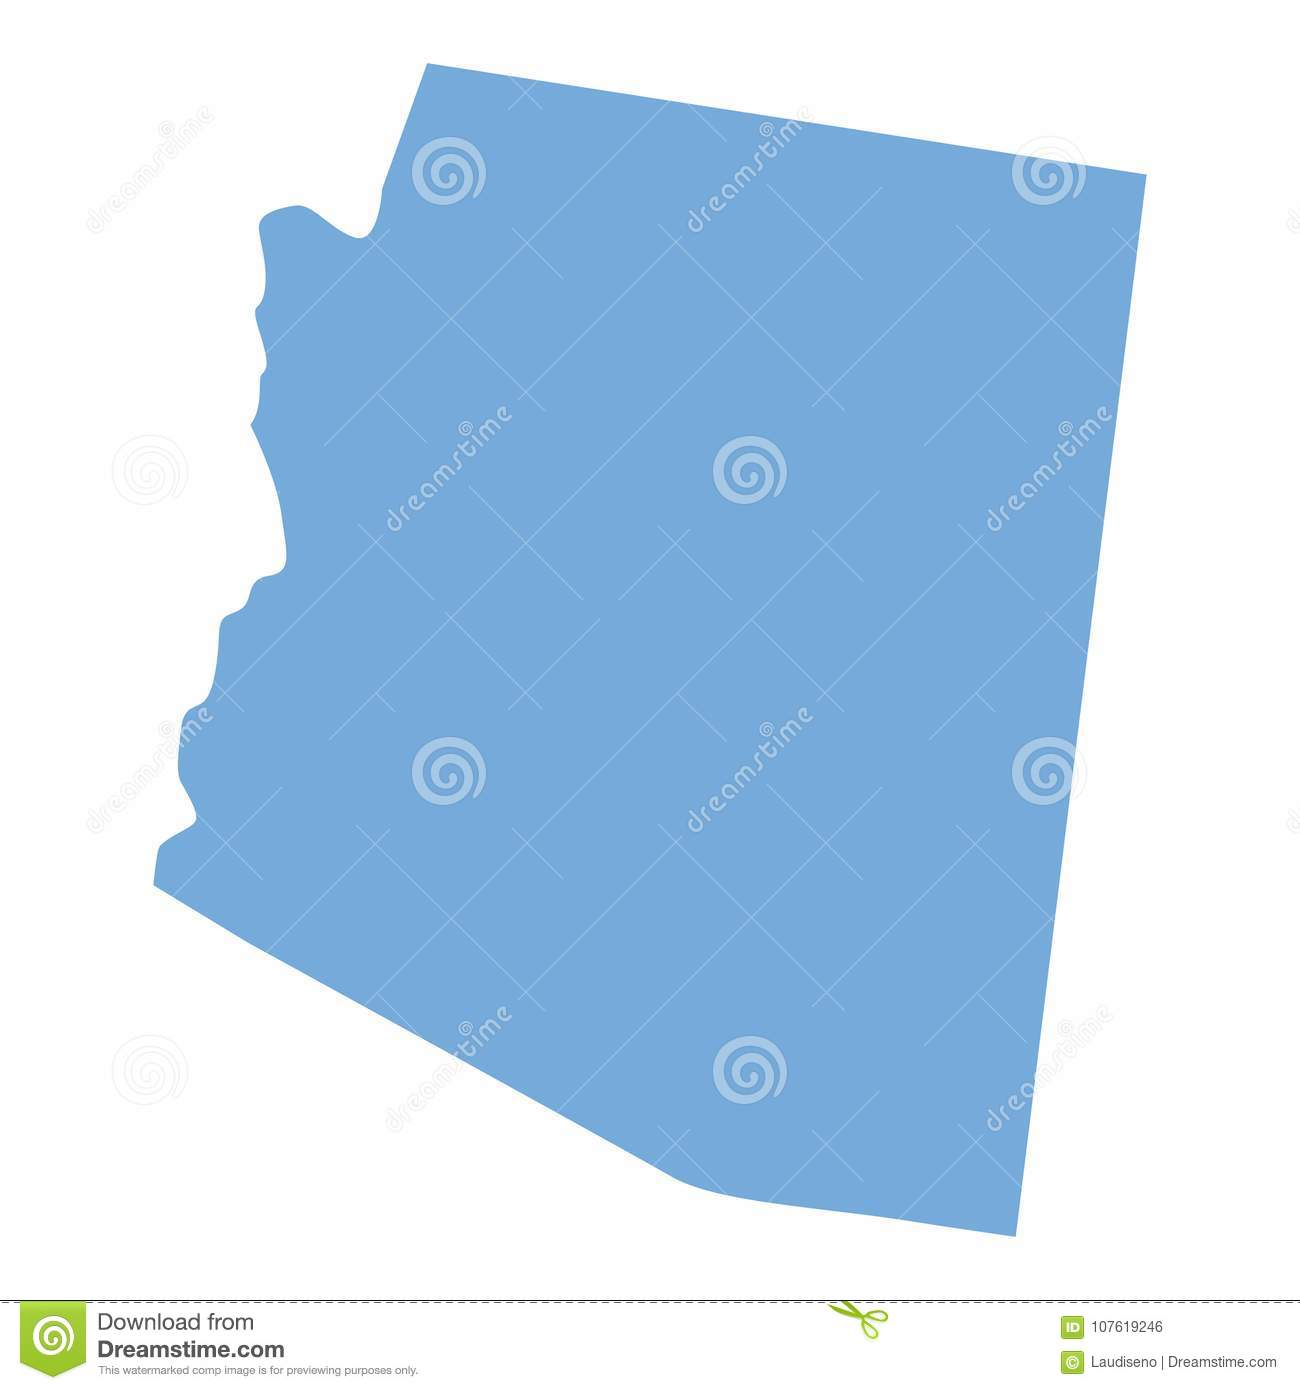 Mapa del estado de Arizona